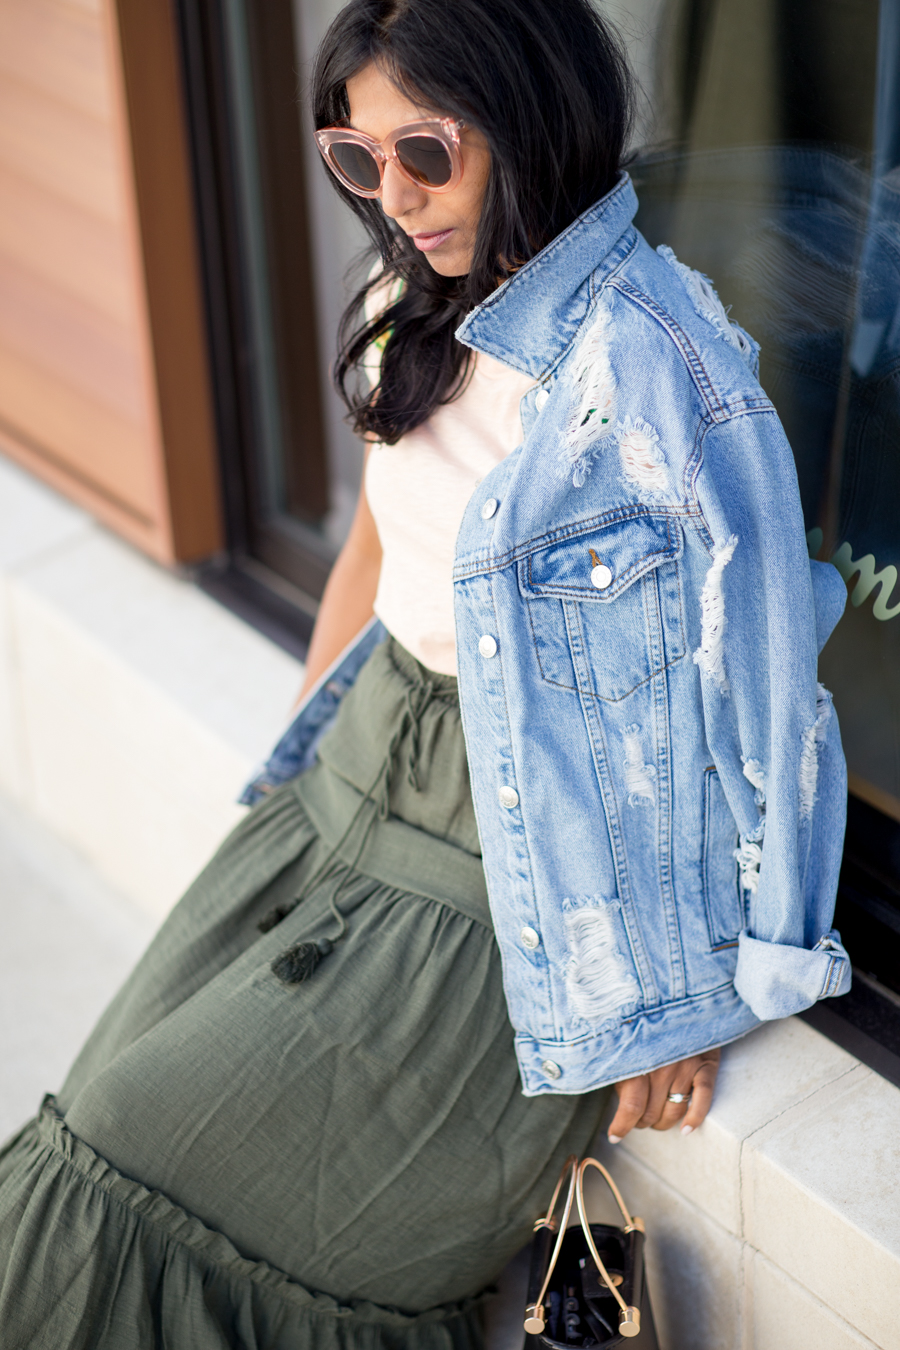 denim, denim jacket, distressed denim, outerwear, summer style, fall style, casual outfit, fall wardrobe updates, style tips, petite fashion, topshop, h&m, casual chic, affordable style